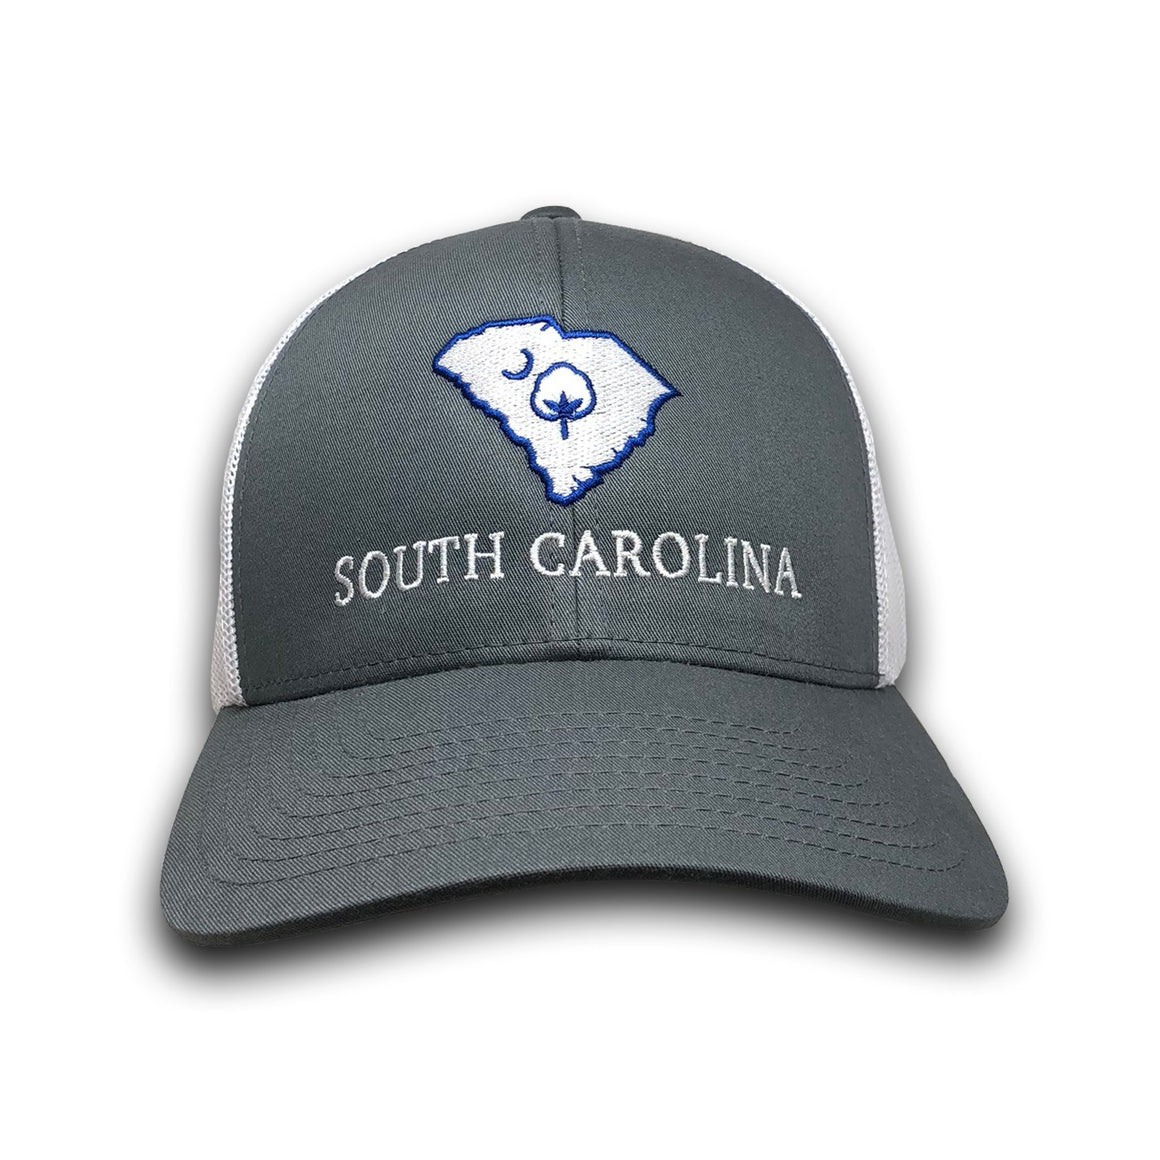 Old State Pride Hats South Carolina - South Carolina Trucker Hats